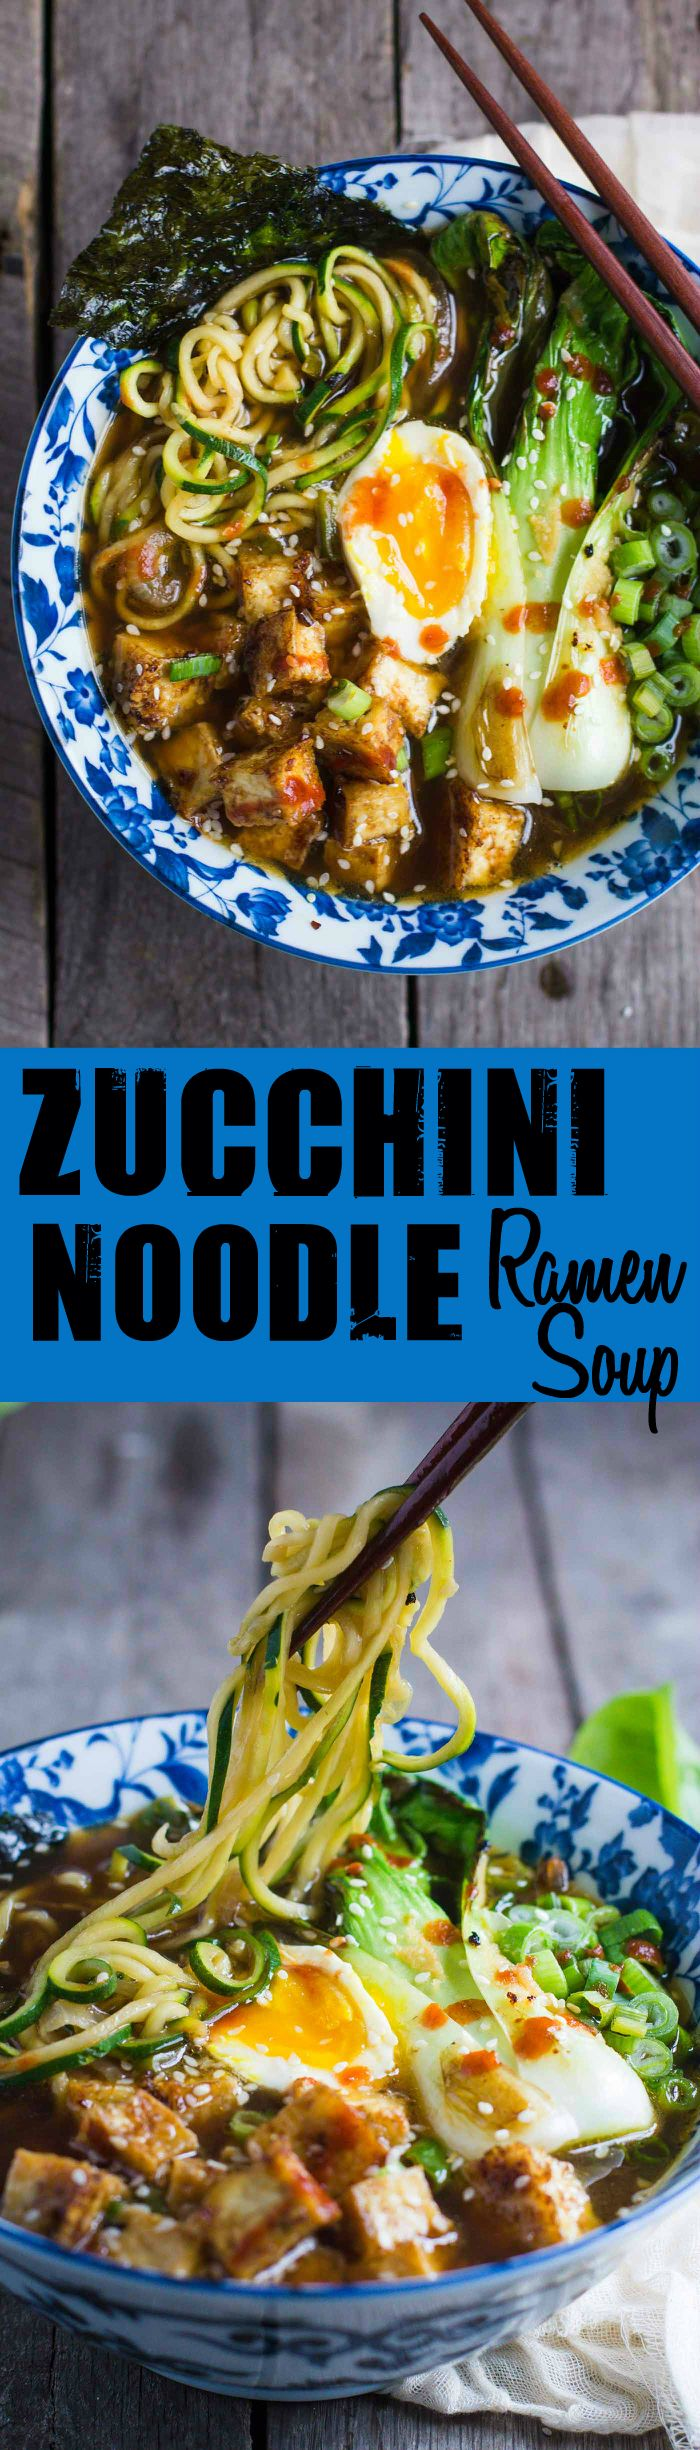 This Zucchini Noodle Ramen Soup is VERY easy to make, gluten free, vegetarian, and even VEGAN is you just leave off the soft boiled egg!